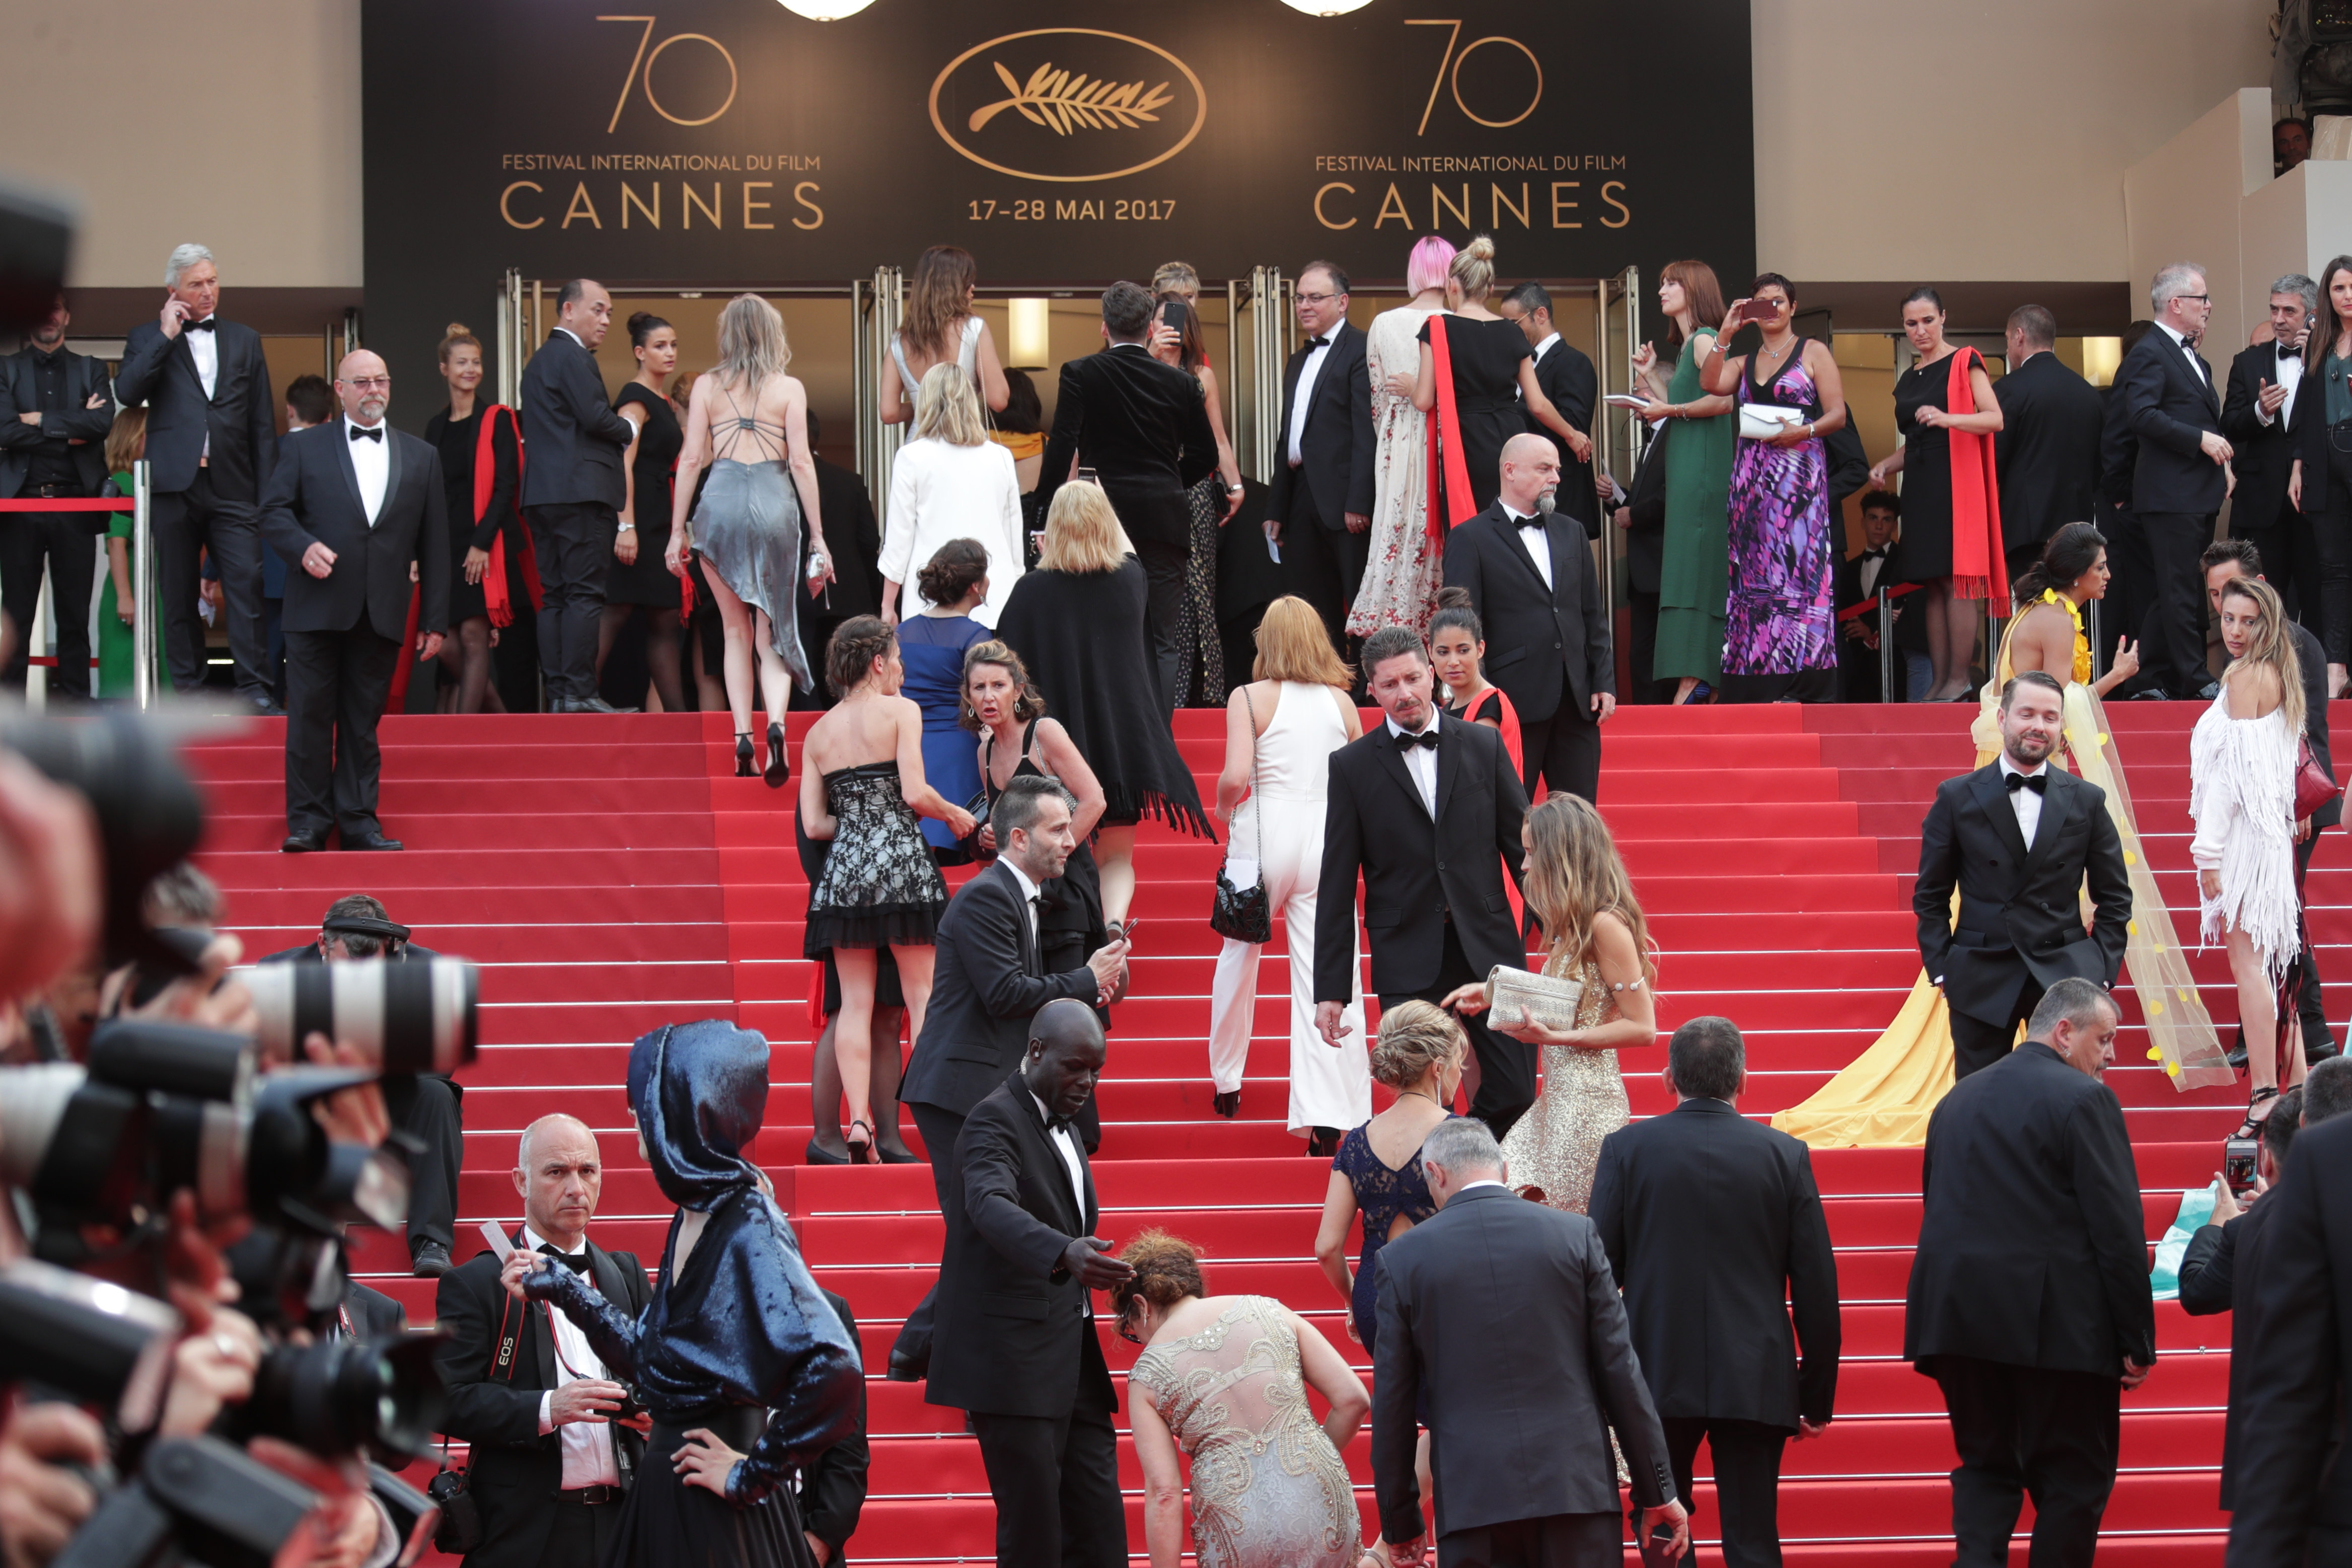 To acquire Film cannes festival buzz picture trends